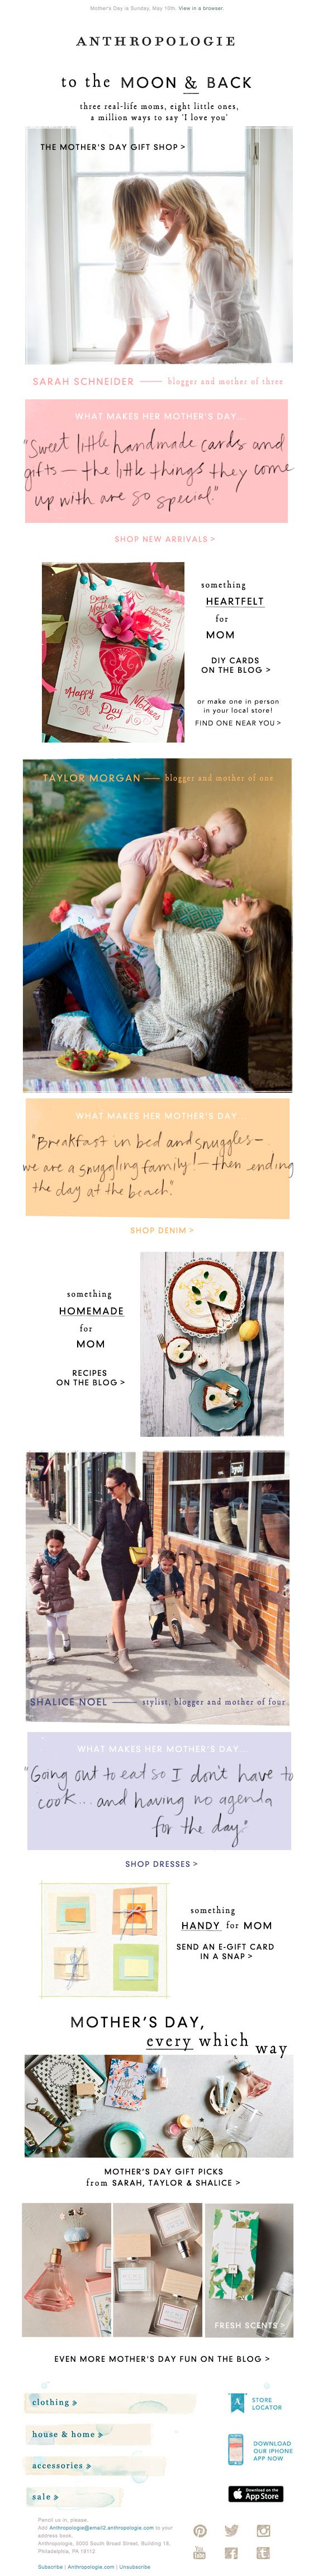 Sent: 4/29/15   SL: Moms to adore (next to yours, of course).   Great way for a brand to incorporate influencers to their email campaign that's relevant in this Mother's Day email from Anthropologie